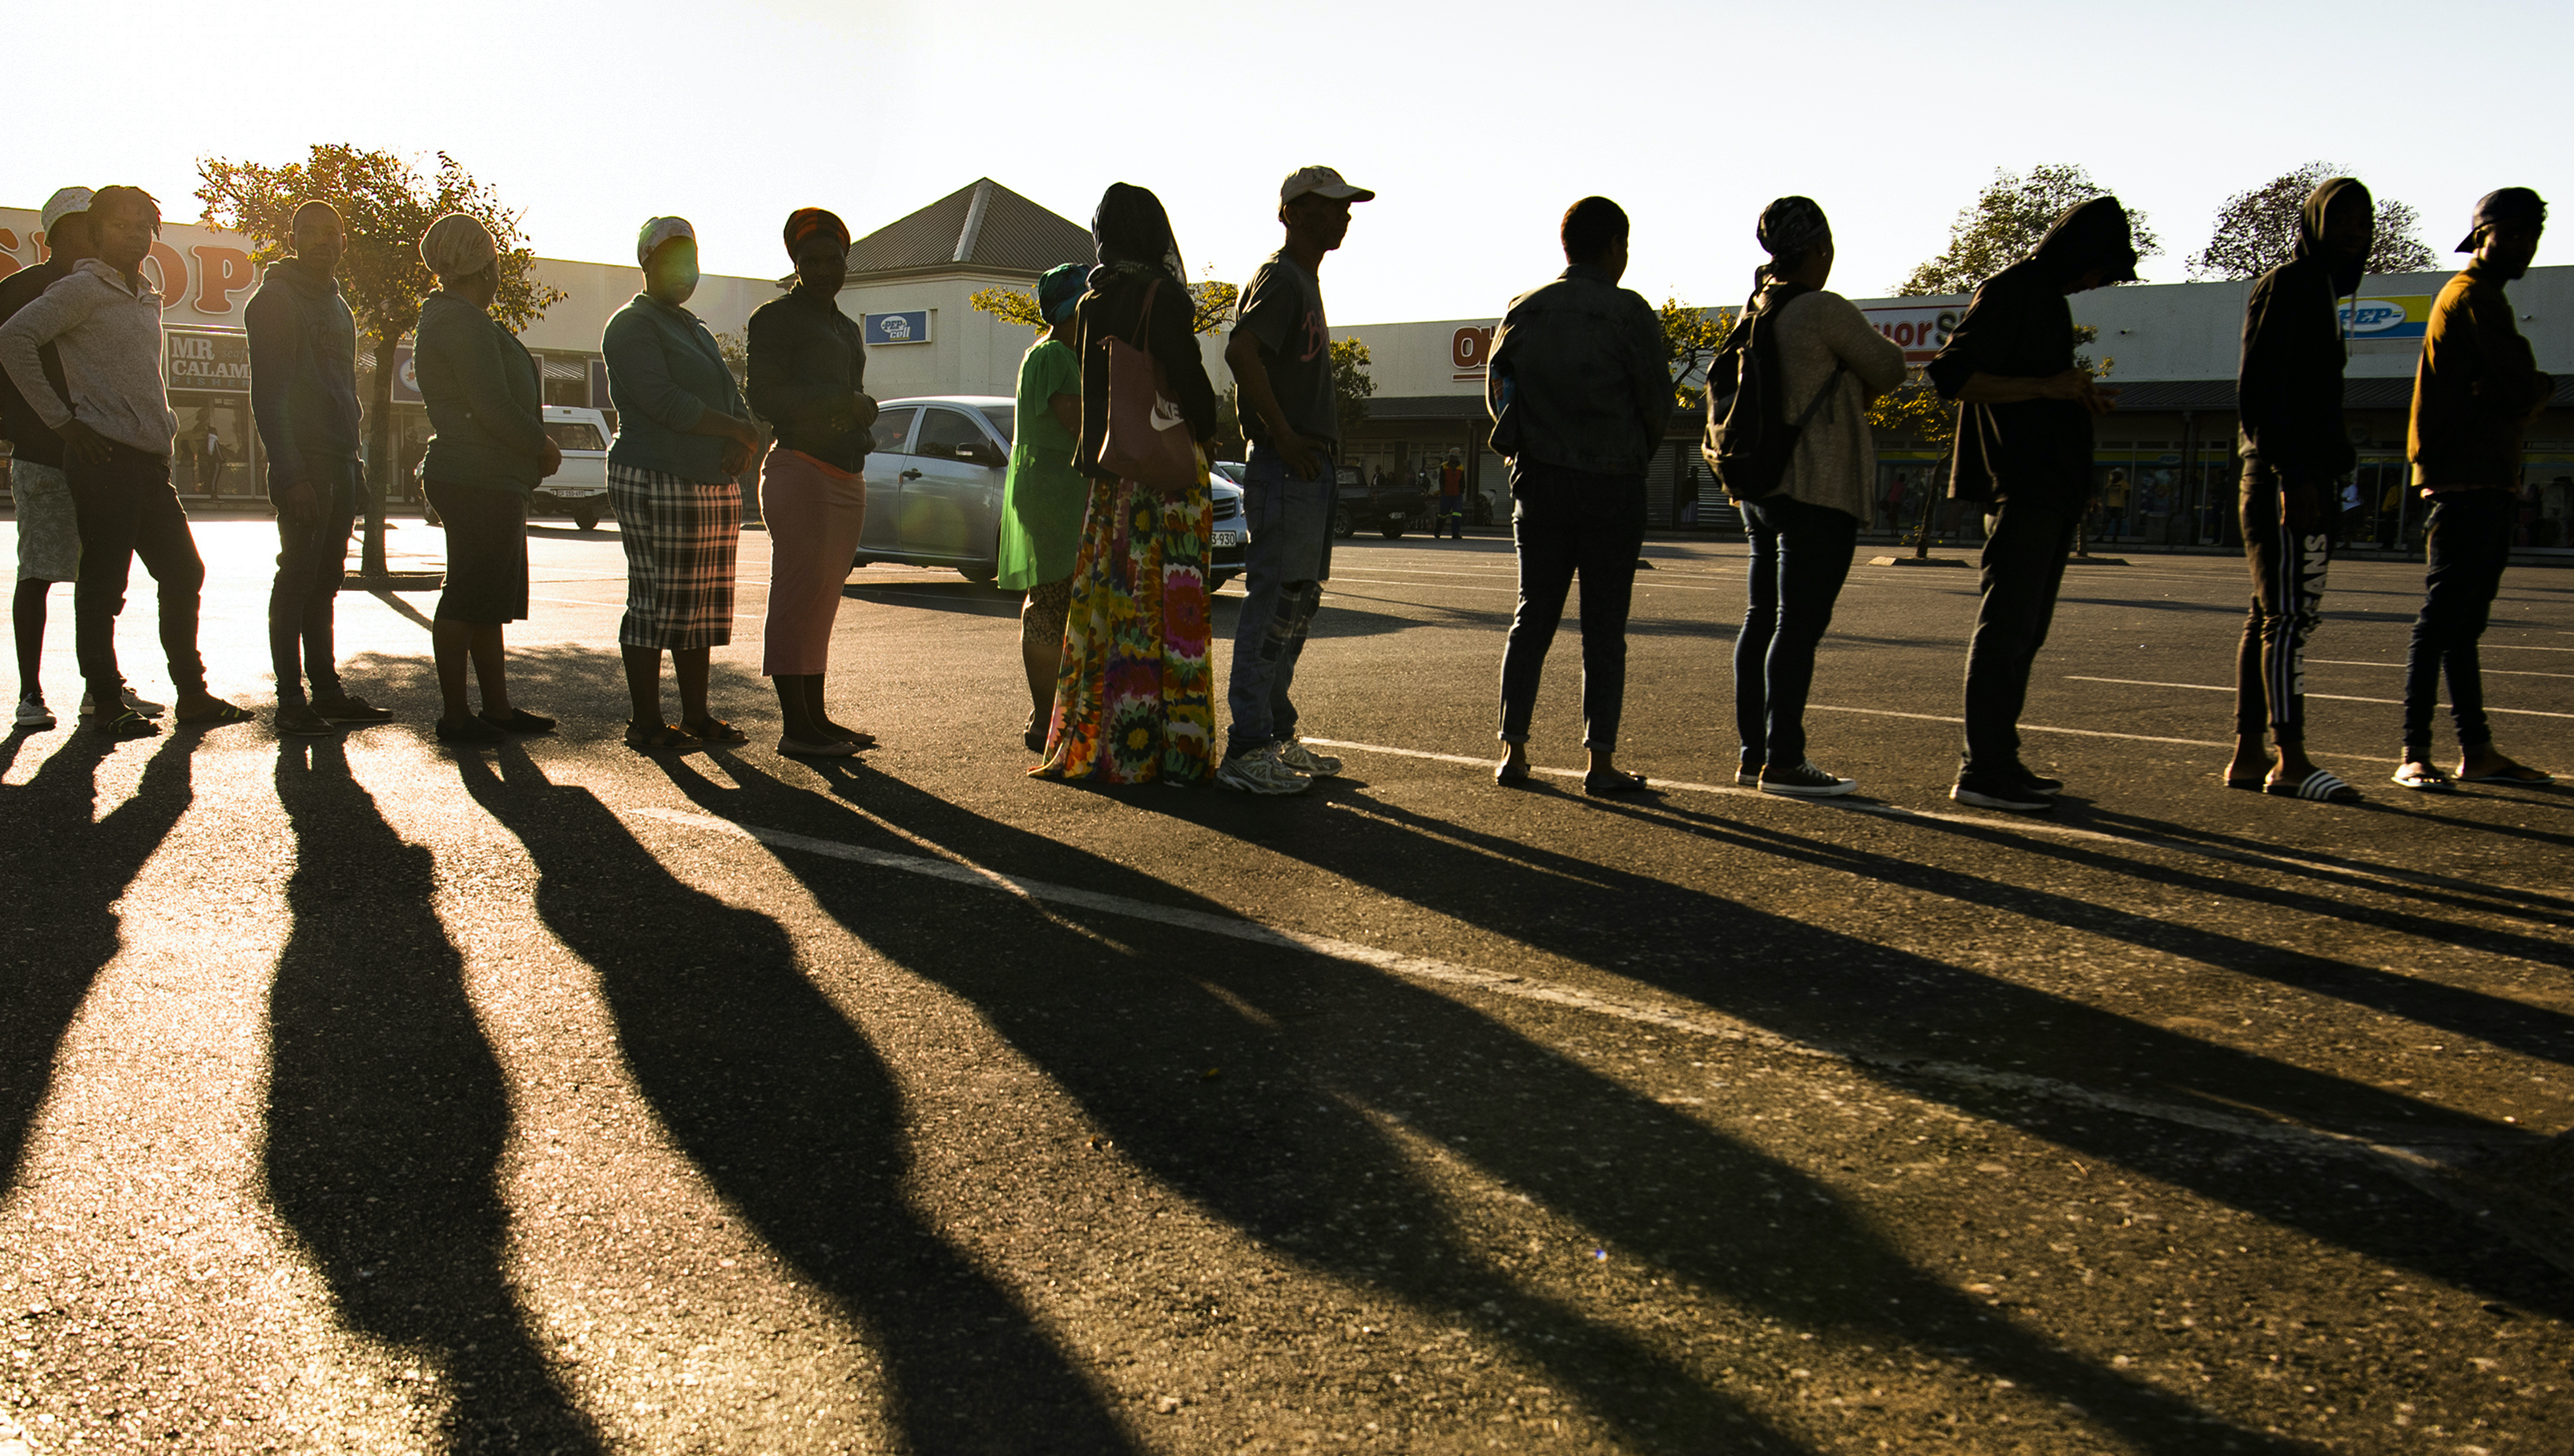 South Africa passes 500,000 confirmed coronavirus cases